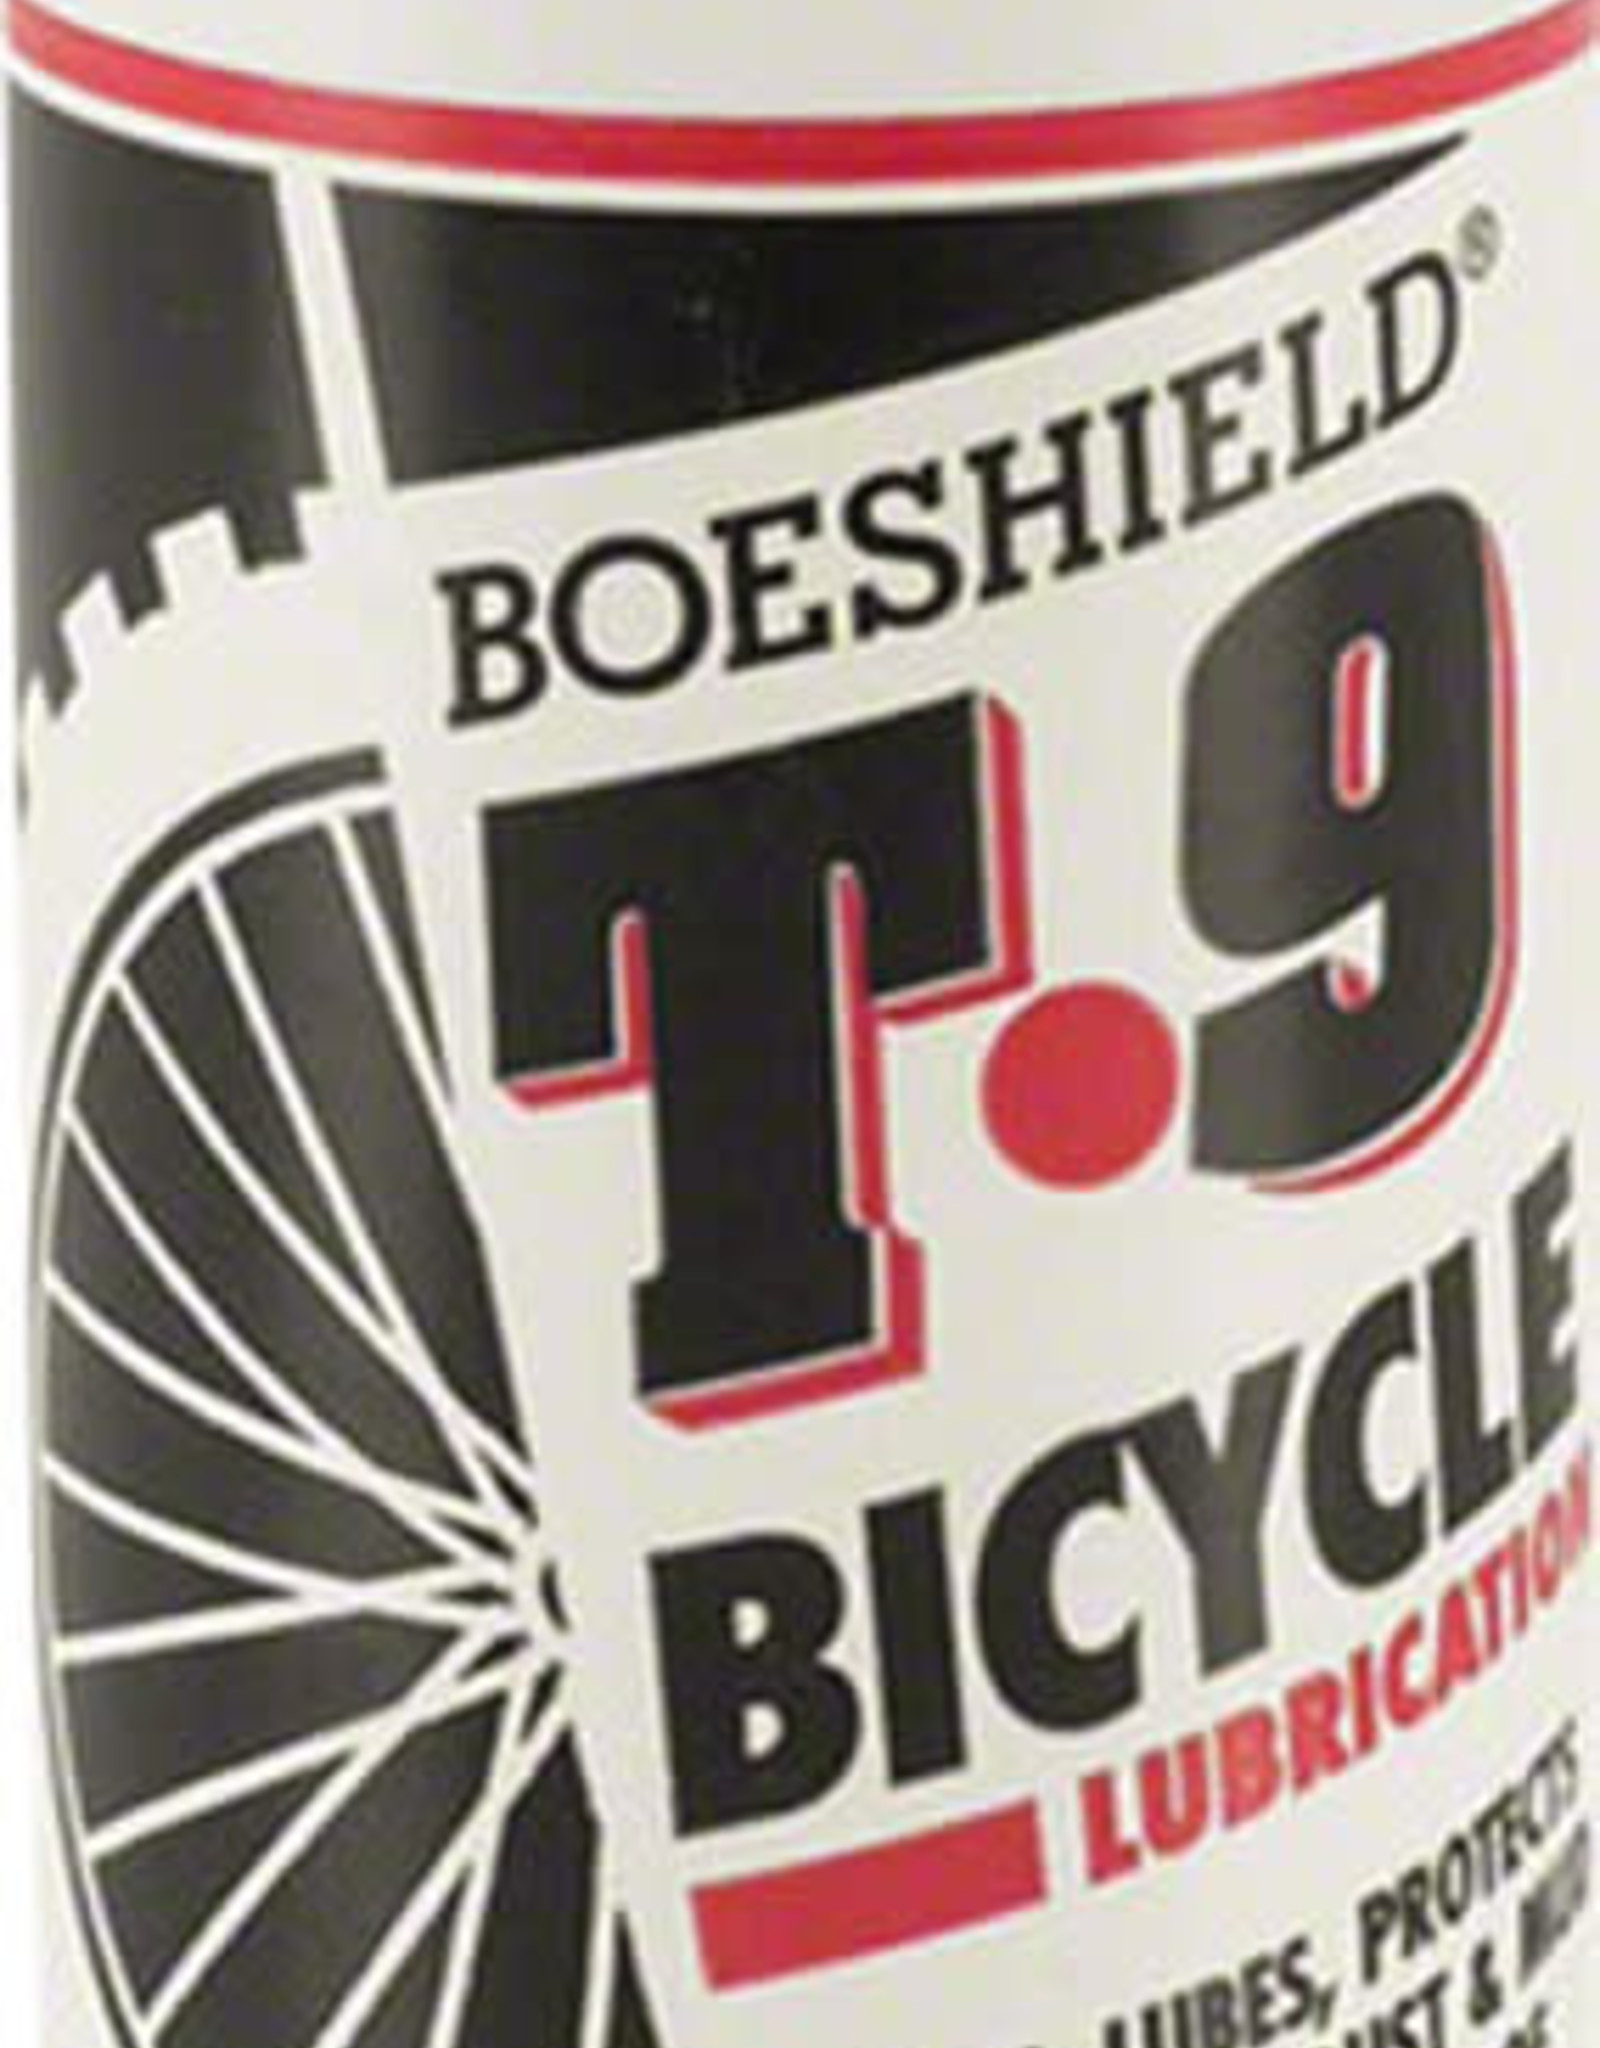 T-9 BOESHIELD Boeshield T9 Bike Chain Lube - 4 fl oz, Aerosol